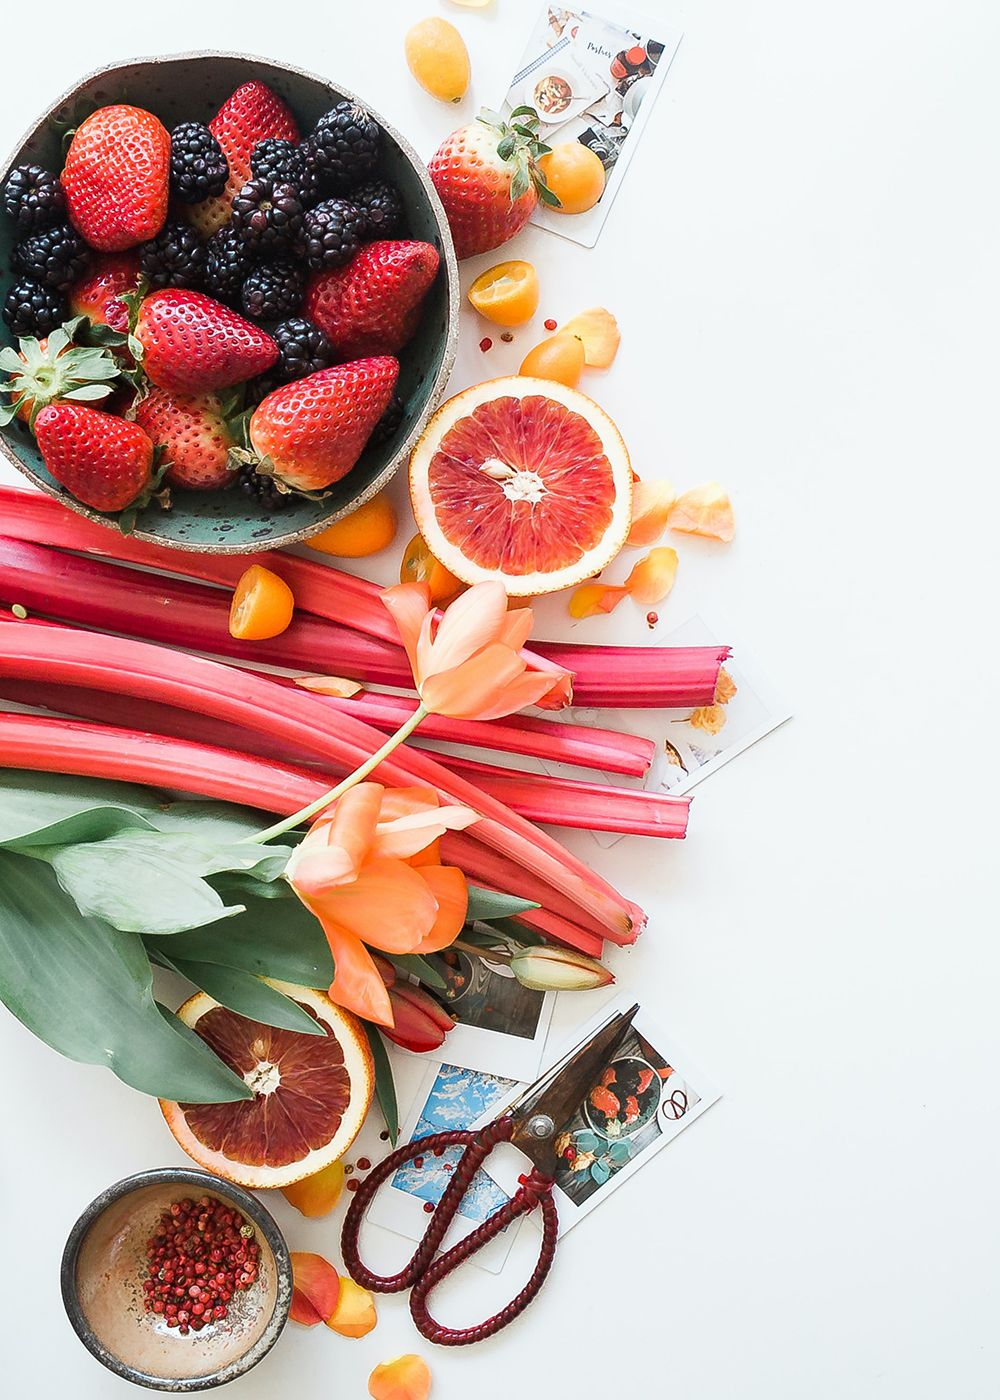 Fruit brooke lark 08boynh r e unsplash edit